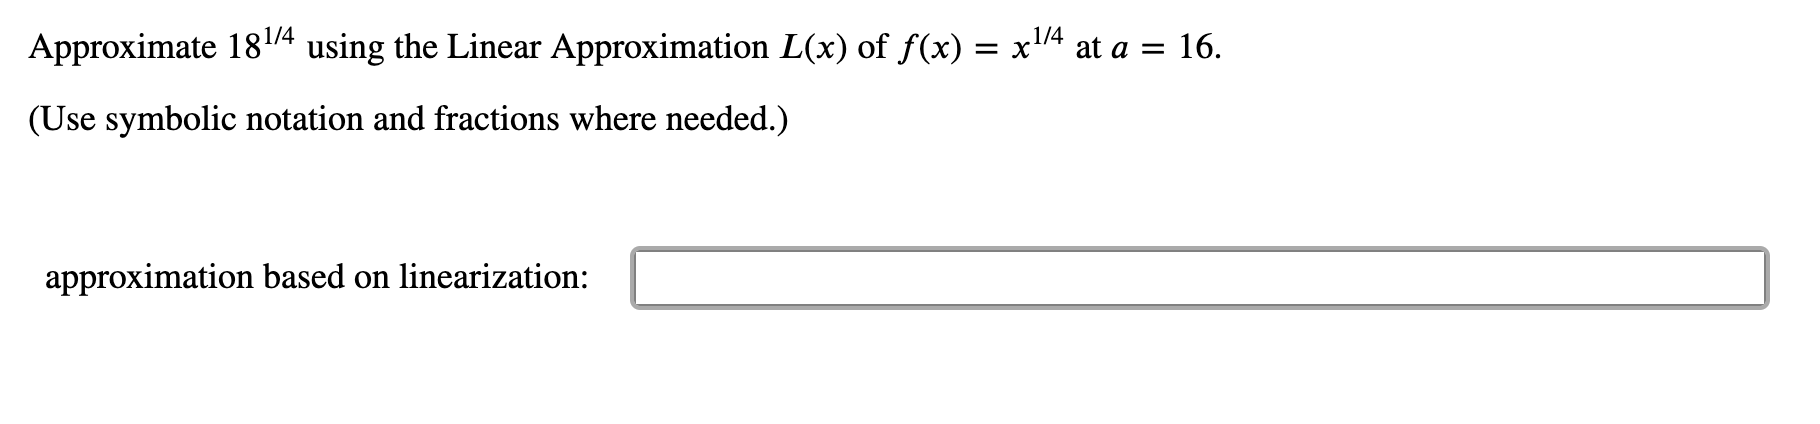 1/4 using the Linear Approximation L(x) of f(x) x14 at a = 16 Approximate 181/4 (Use symbolic notation and fractions where needed.) approximation based on linearization: